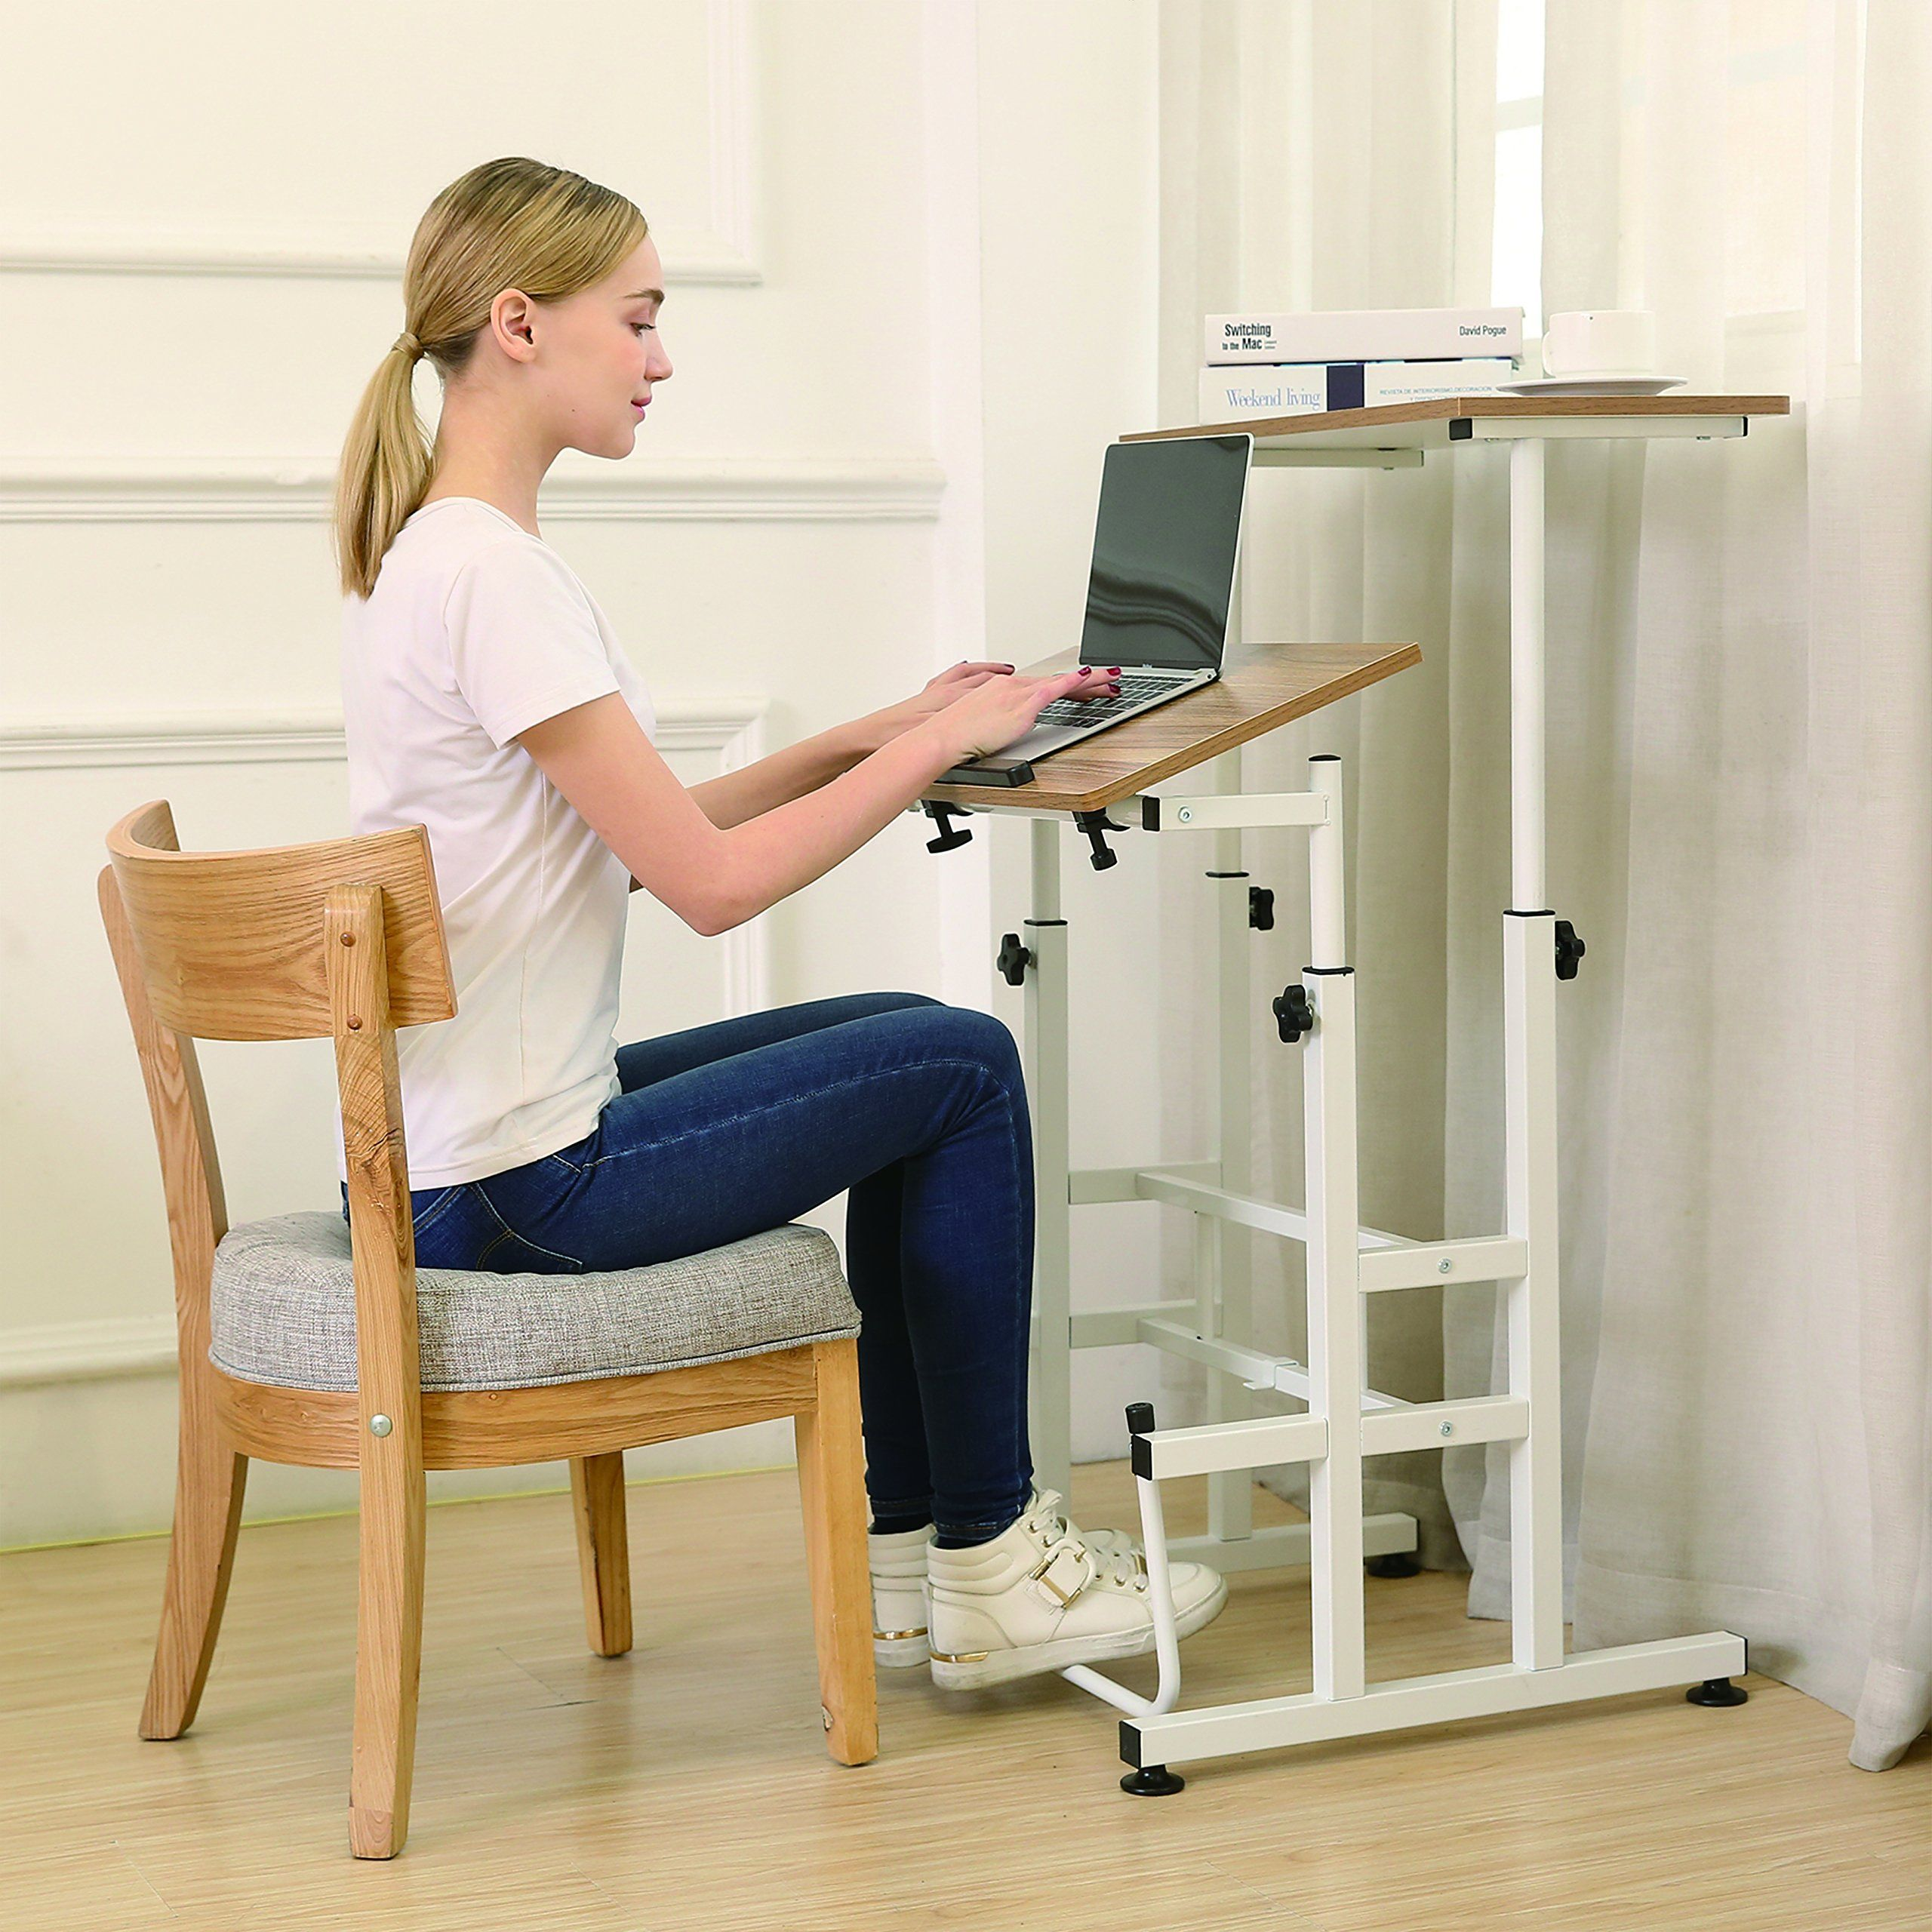 Sdadi Adjustable Height Standing Desk With Swinging Footrest Optional For Standing And Seating 2 Modes In 2020 Adjustable Height Standing Desk Standing Desk Foot Rest